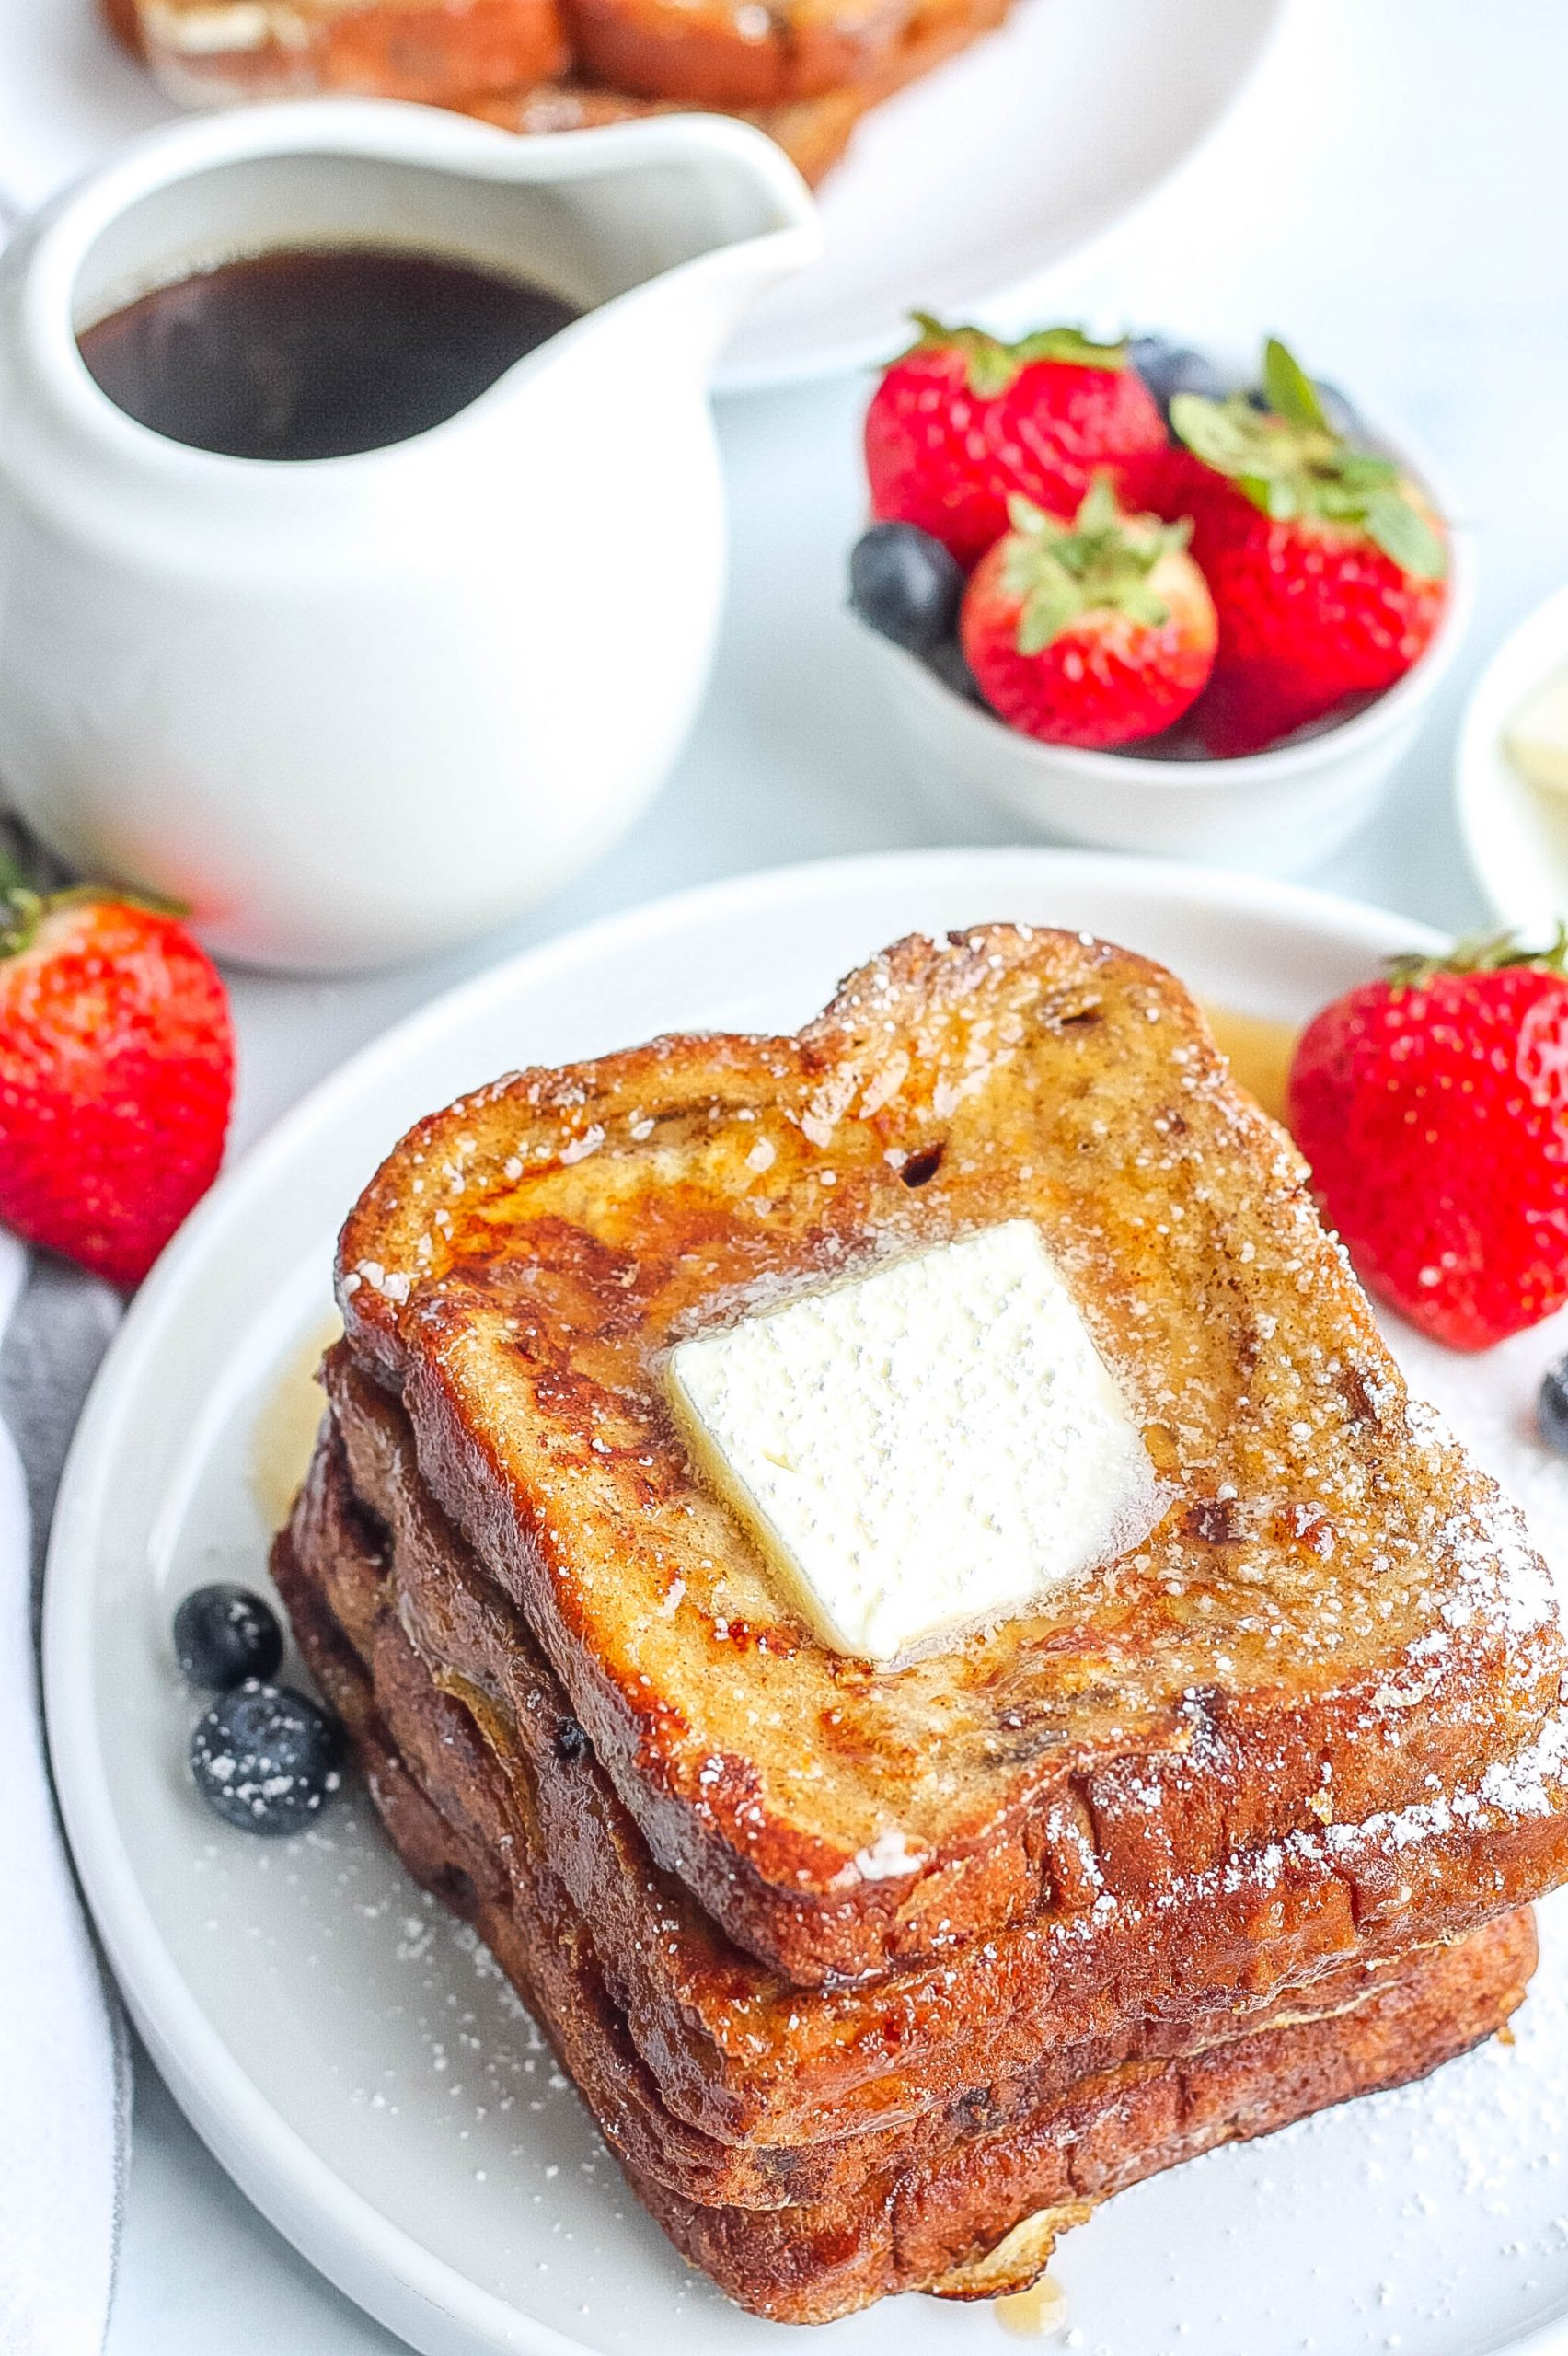 homemade cinnamon french toast with berries and butter